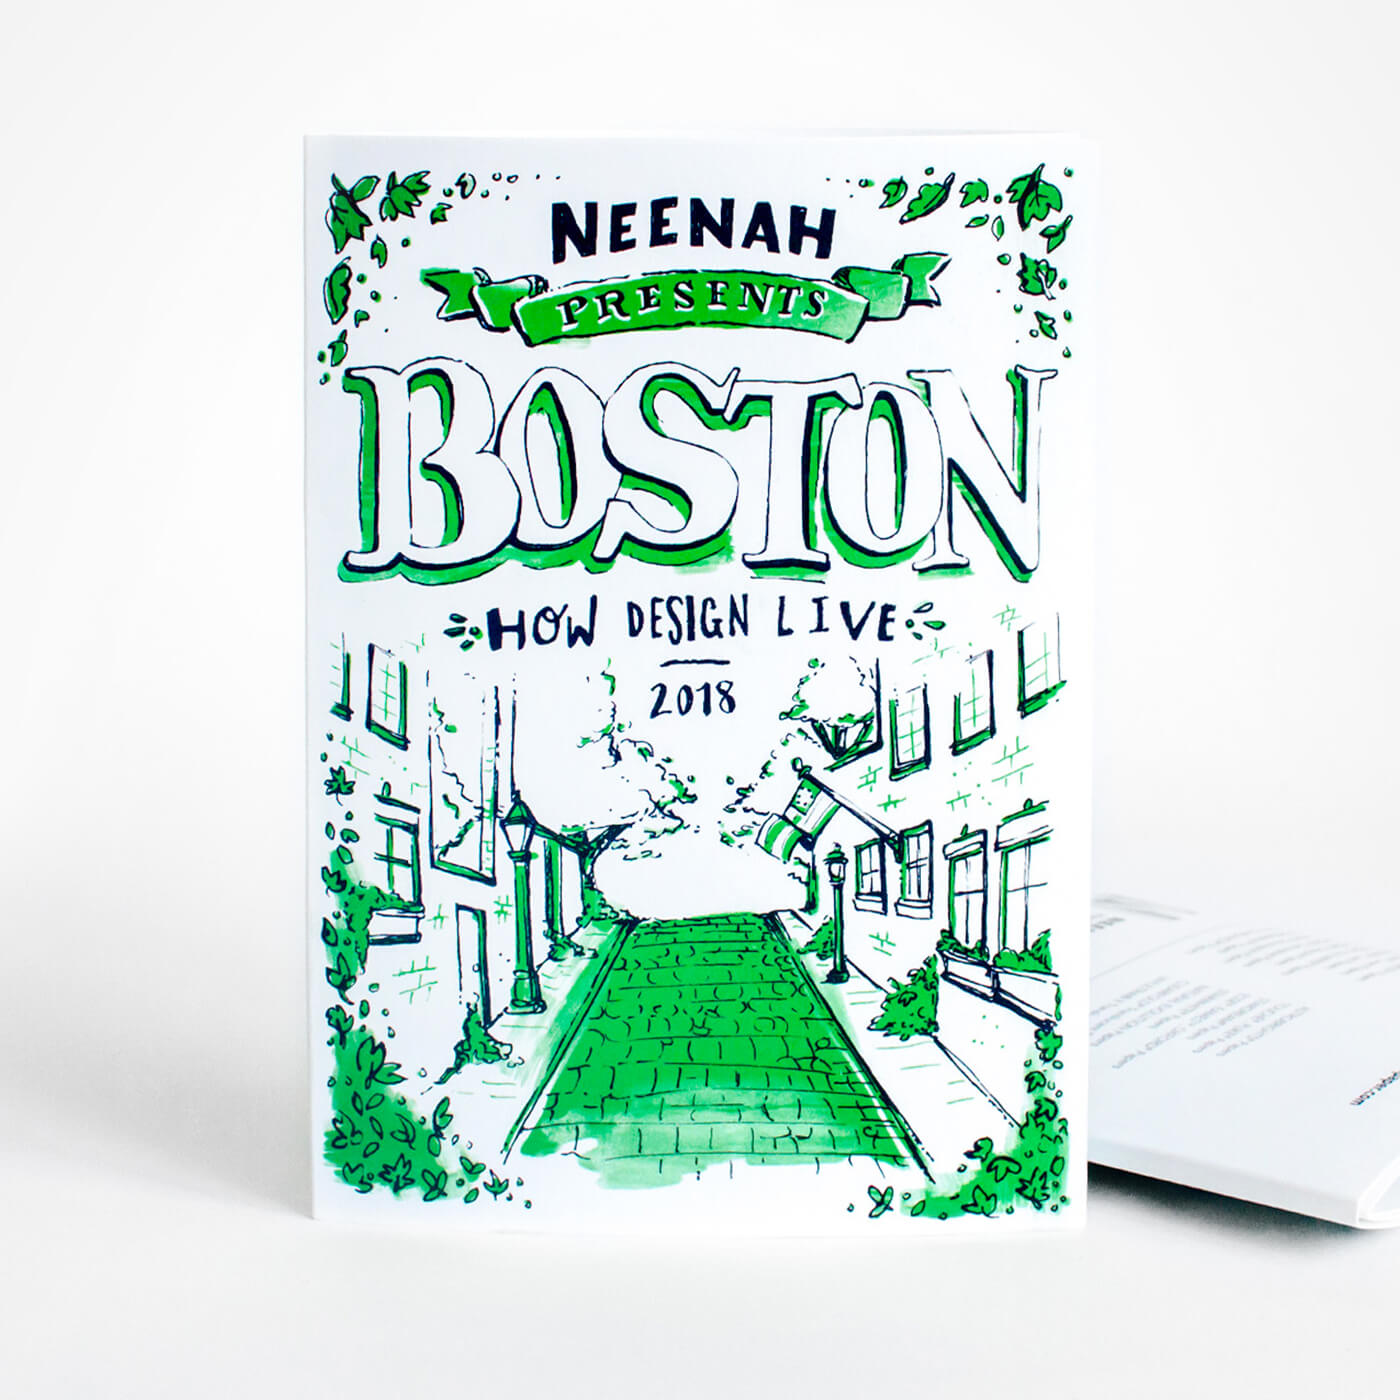 Neenah Presents Boston - An illustrated guide of the Hub of the Universe, featuring a full map of Boston and illustrations of its history of architecture, culture, and design.IllustrationView Project →